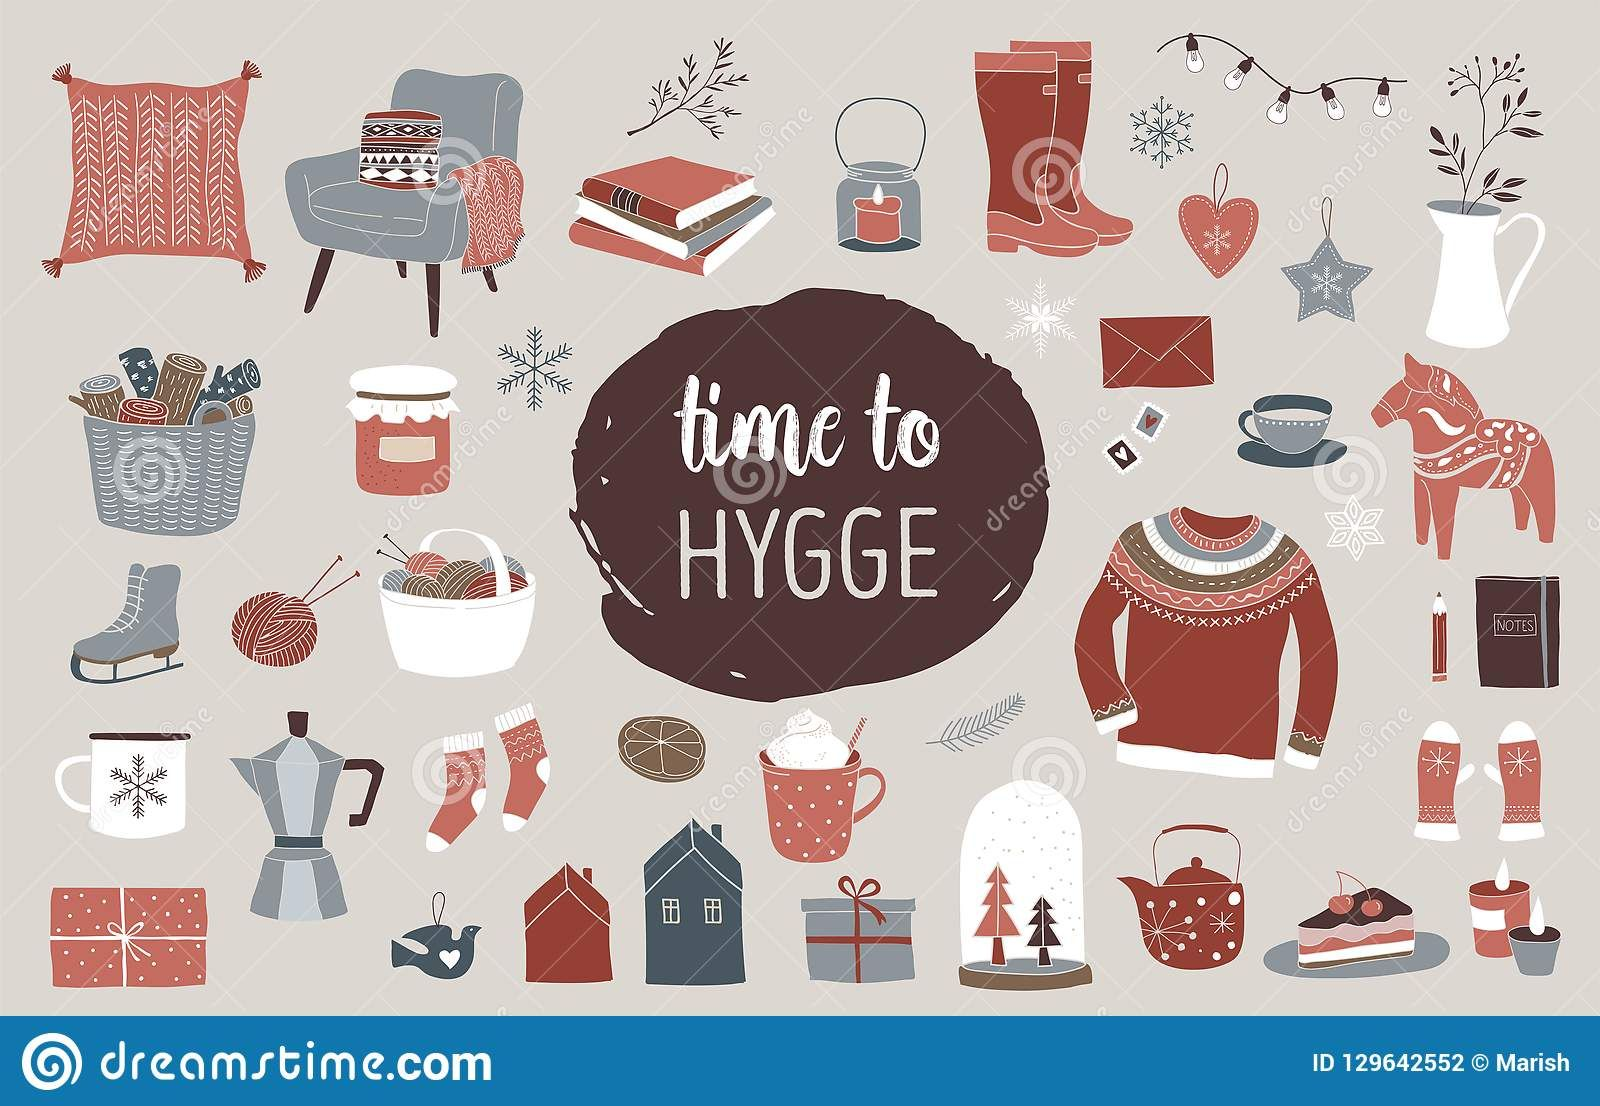 Scandinavian winter elements and Hygge concept design #hygge